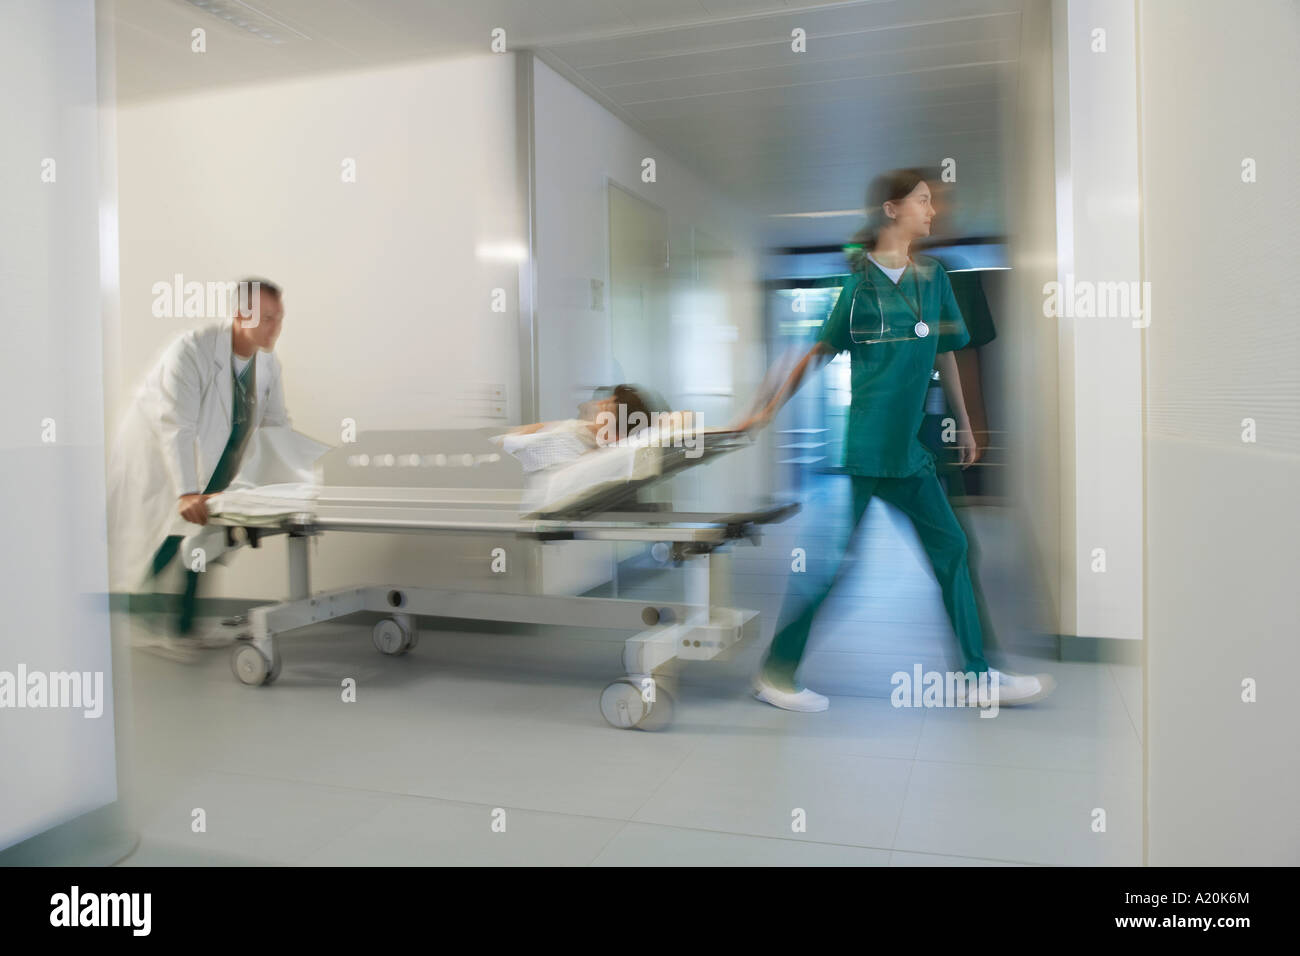 Medical Workers Moving Patient on gurney through hospital corridor, motion blur - Stock Image